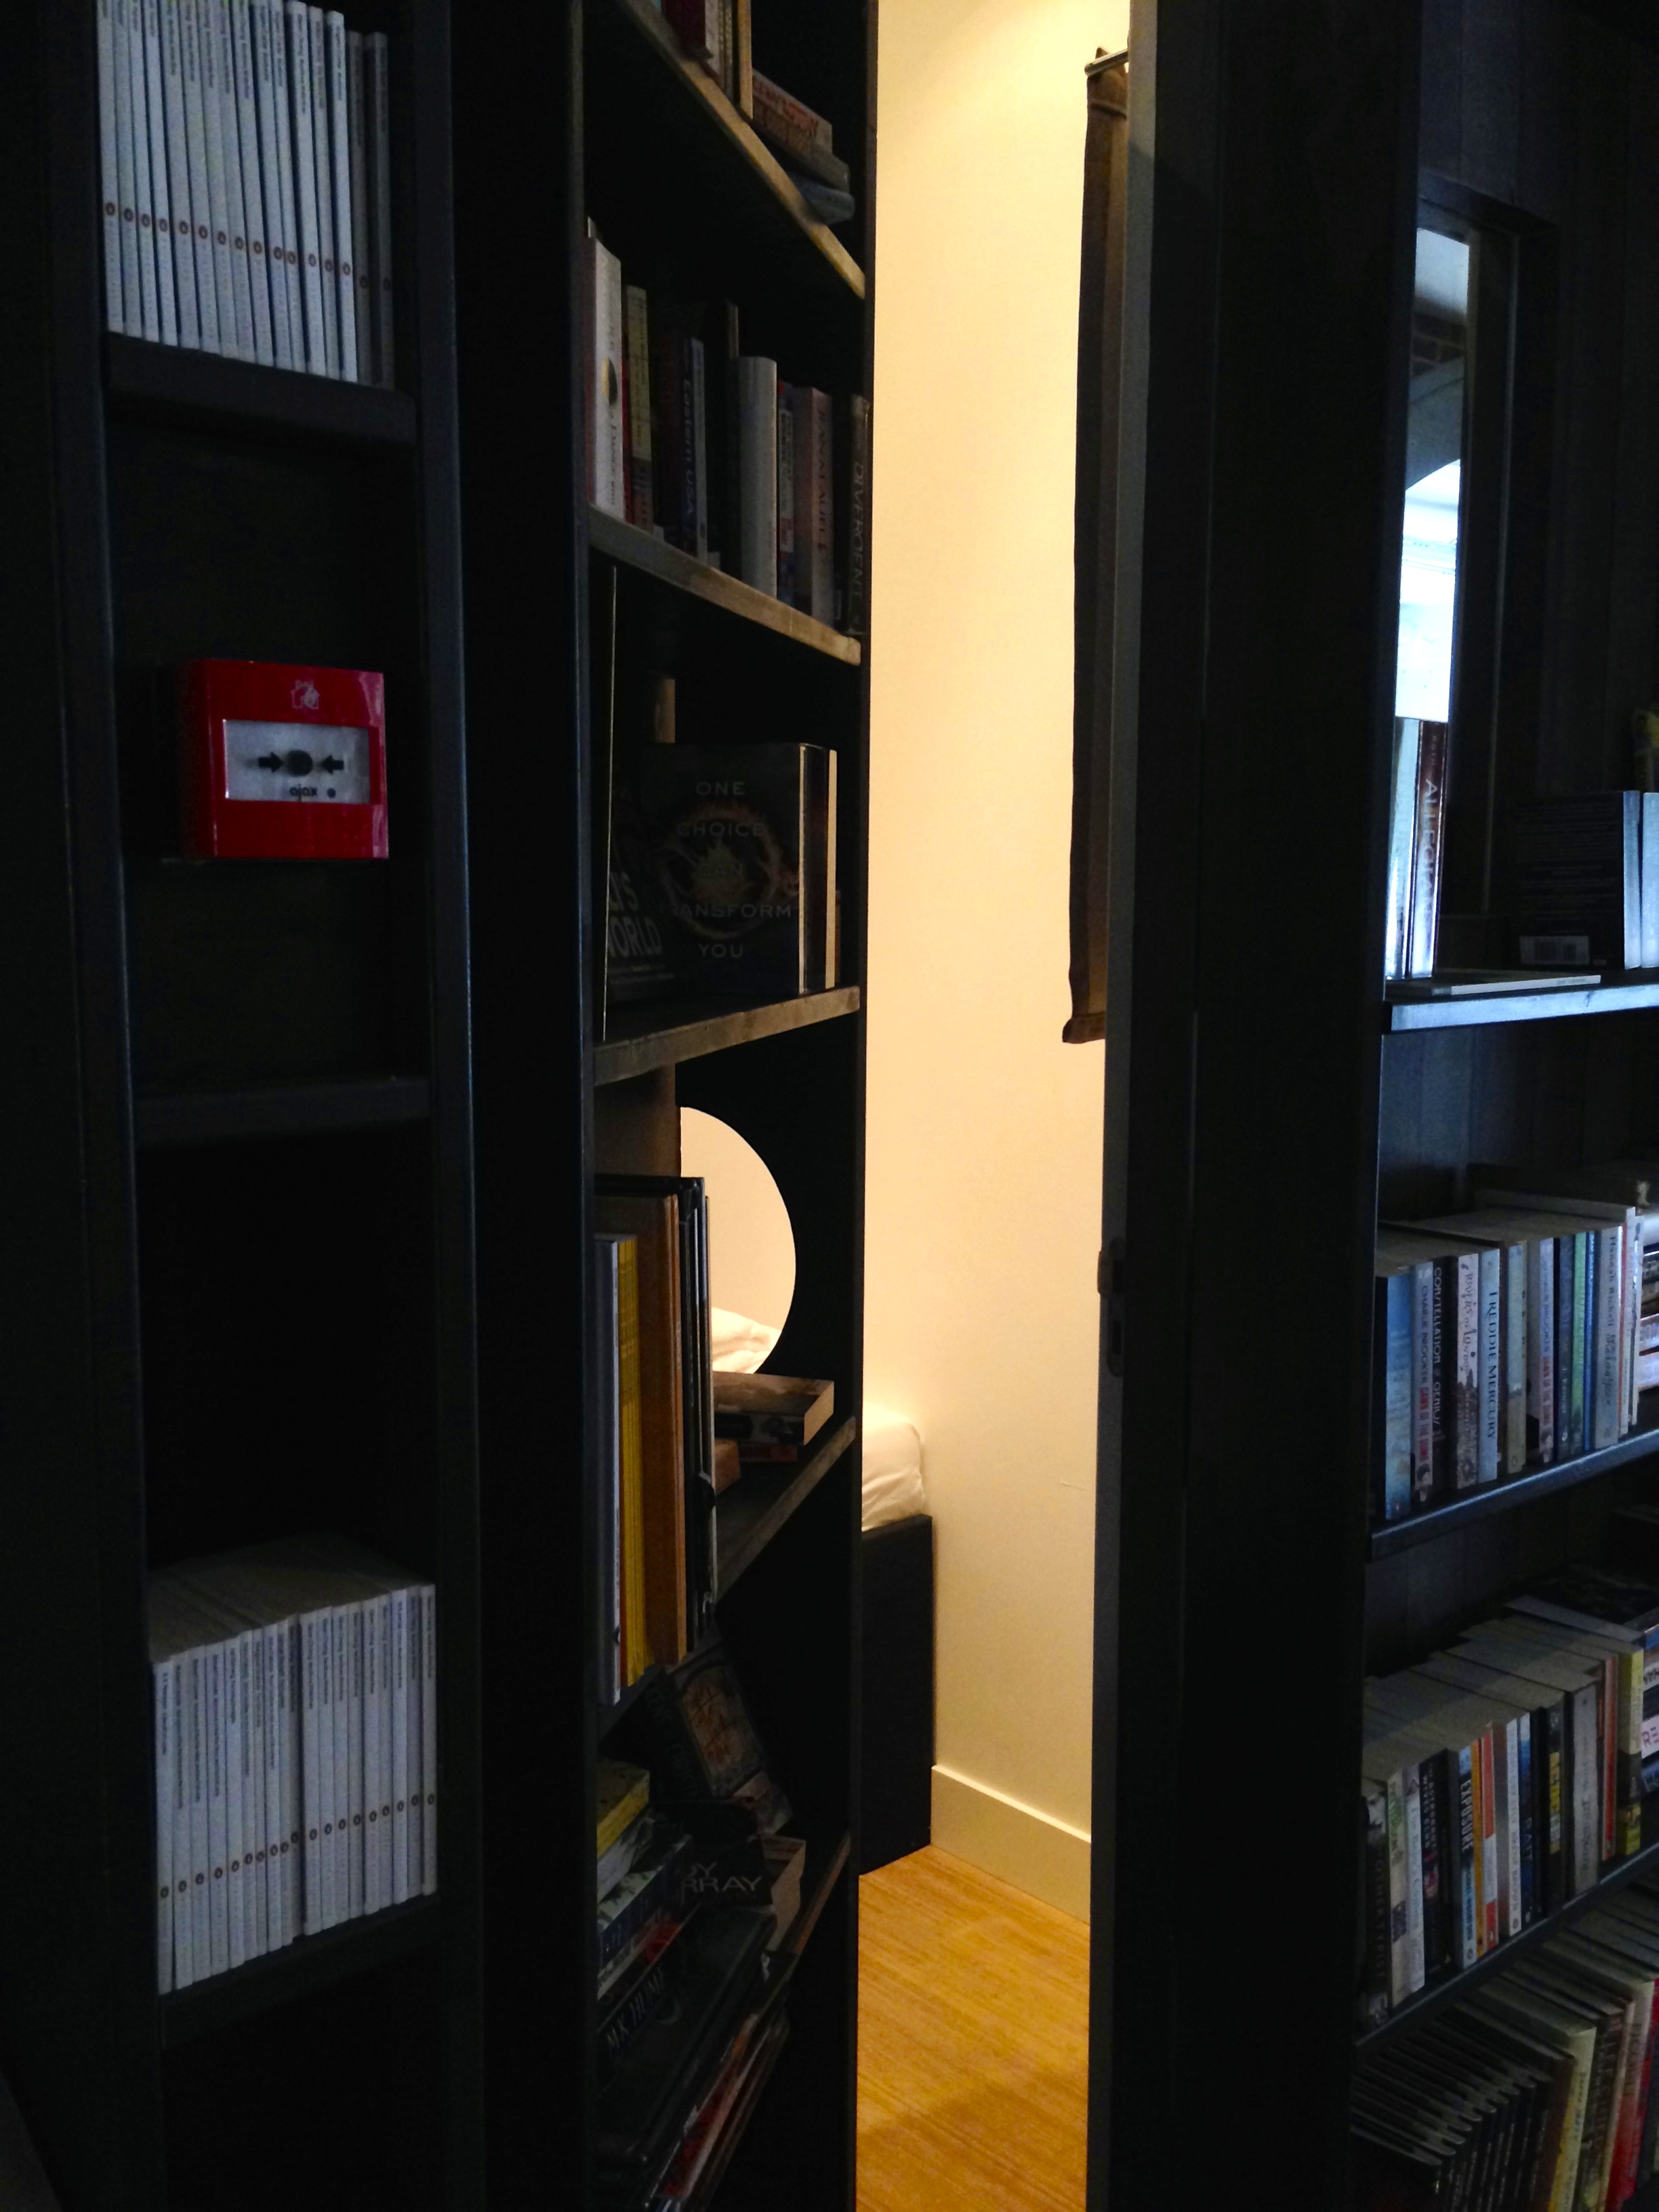 Our room behind the bookcase